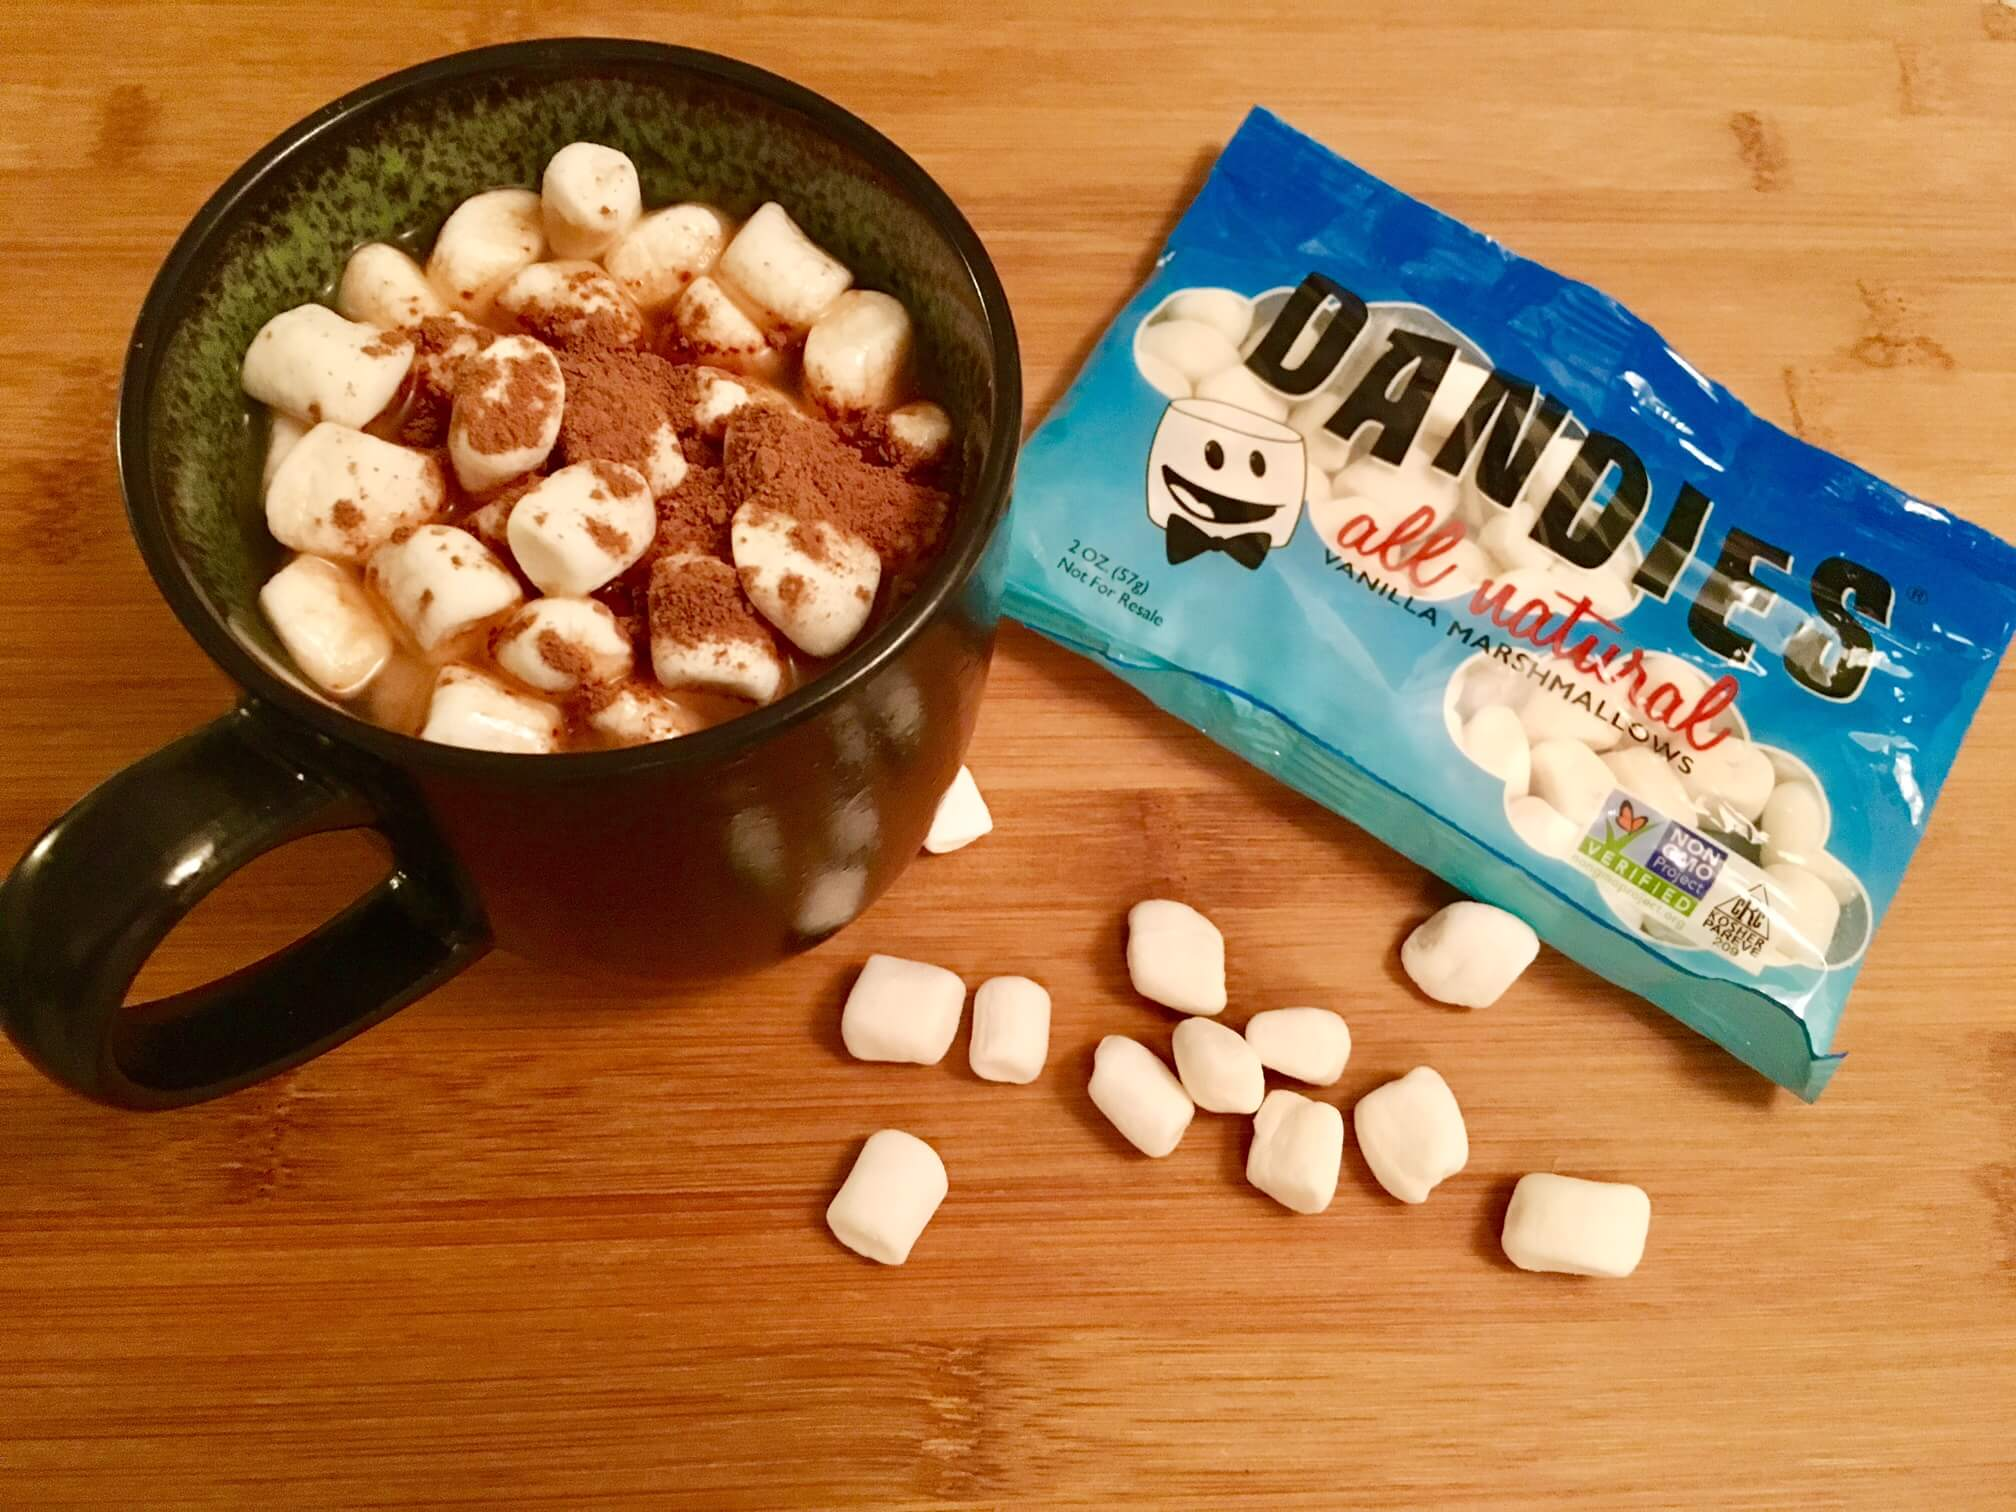 Dandies Vegan Marshmallows